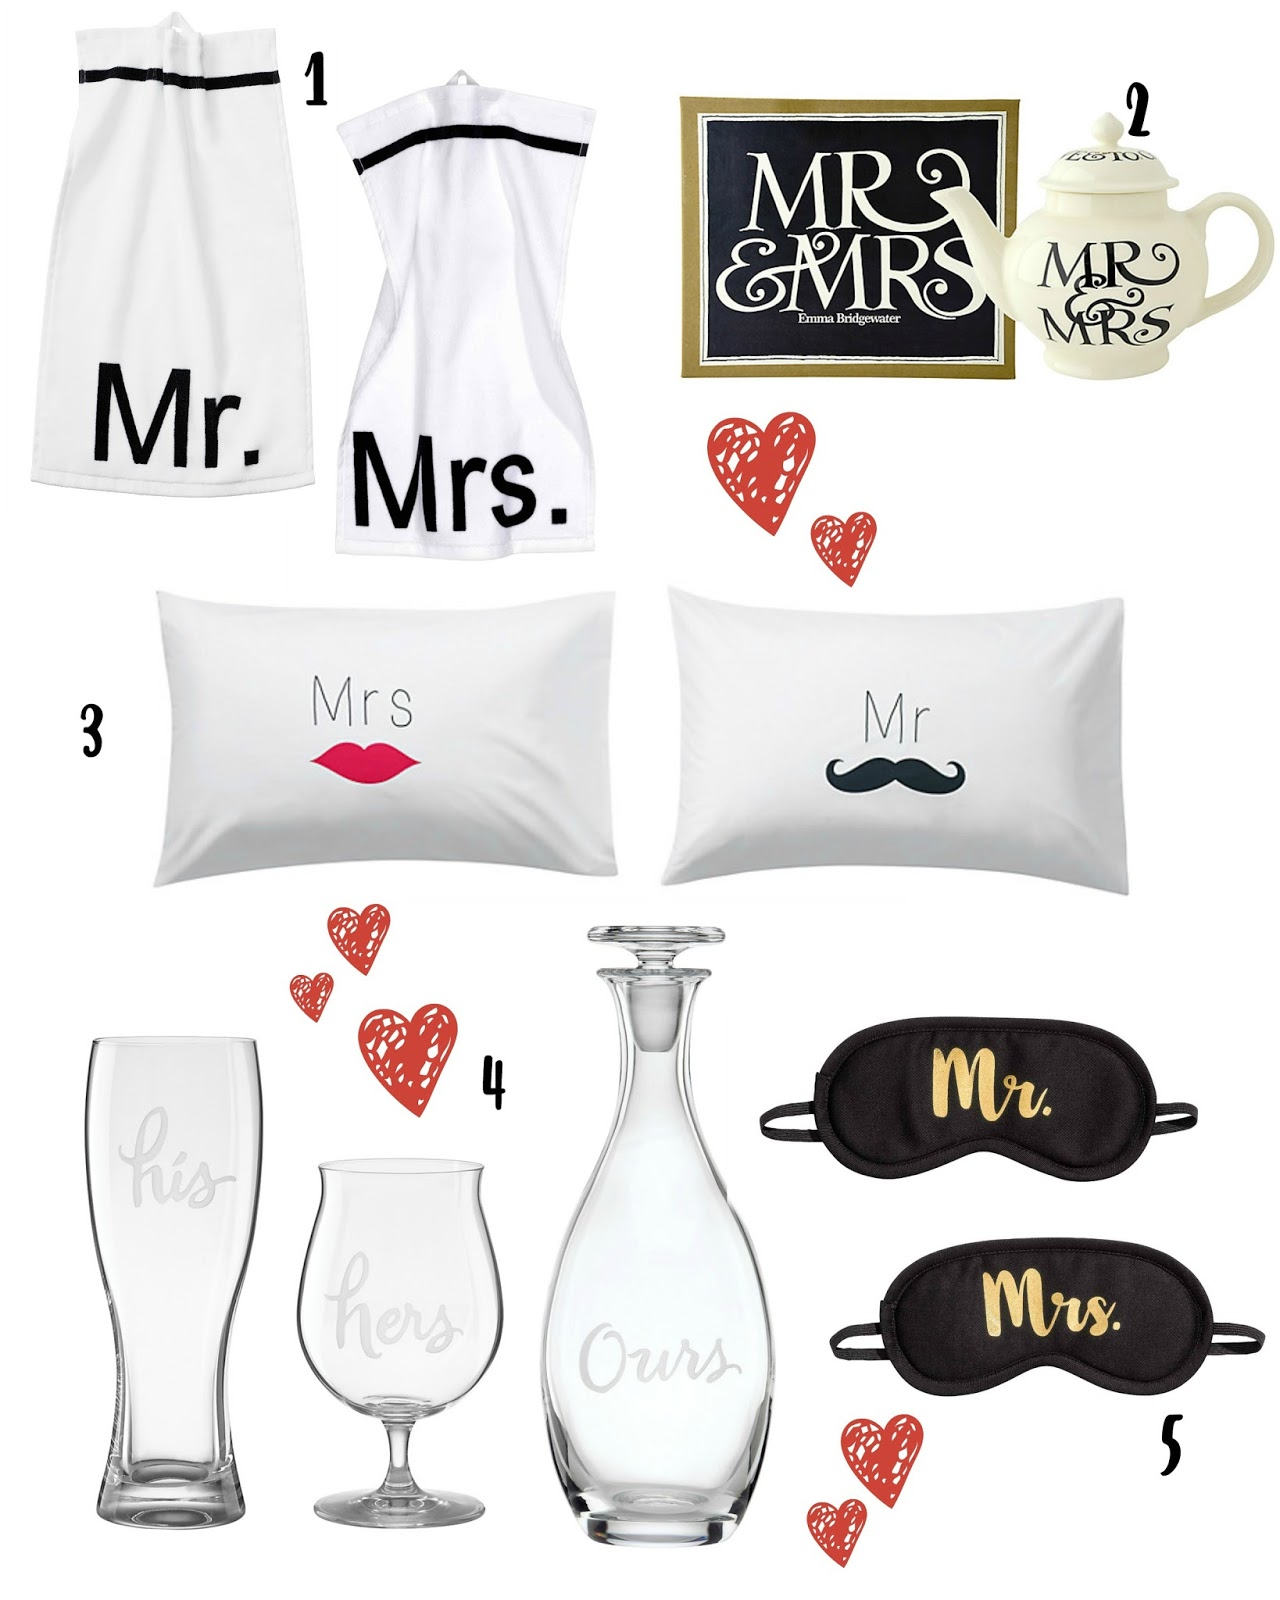 mamasVIB | V. I. BUYS: I do, I do, I do… 14 modern Mr & Mrs last-minute wedding gift ideas | wedding gifts | Mr & Mrs | Mr and Mrs wedding gift ideas